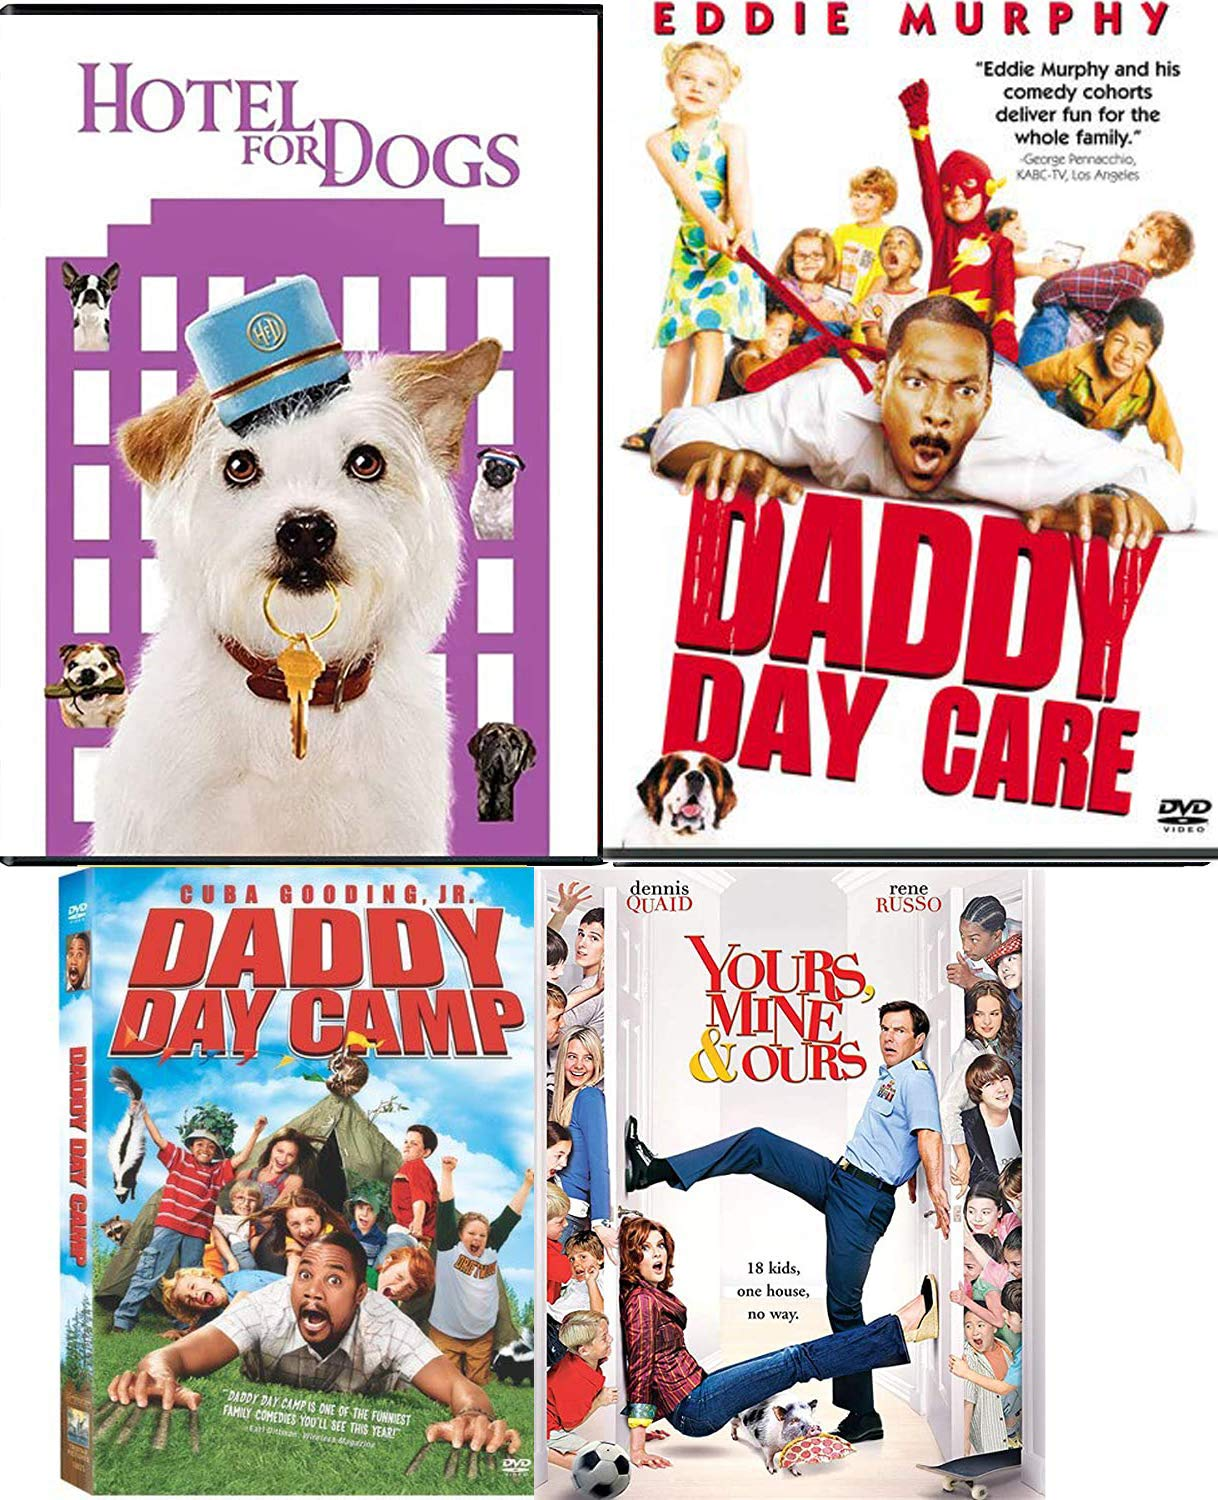 Amazon Com Deliver Whole Family Laughs Movies Dvd Hotel For Dogs Daddy Daycare Daddy Daycamp Ours Yours Mine Comedy 4 Movies Eddie Murphy Movies Tv